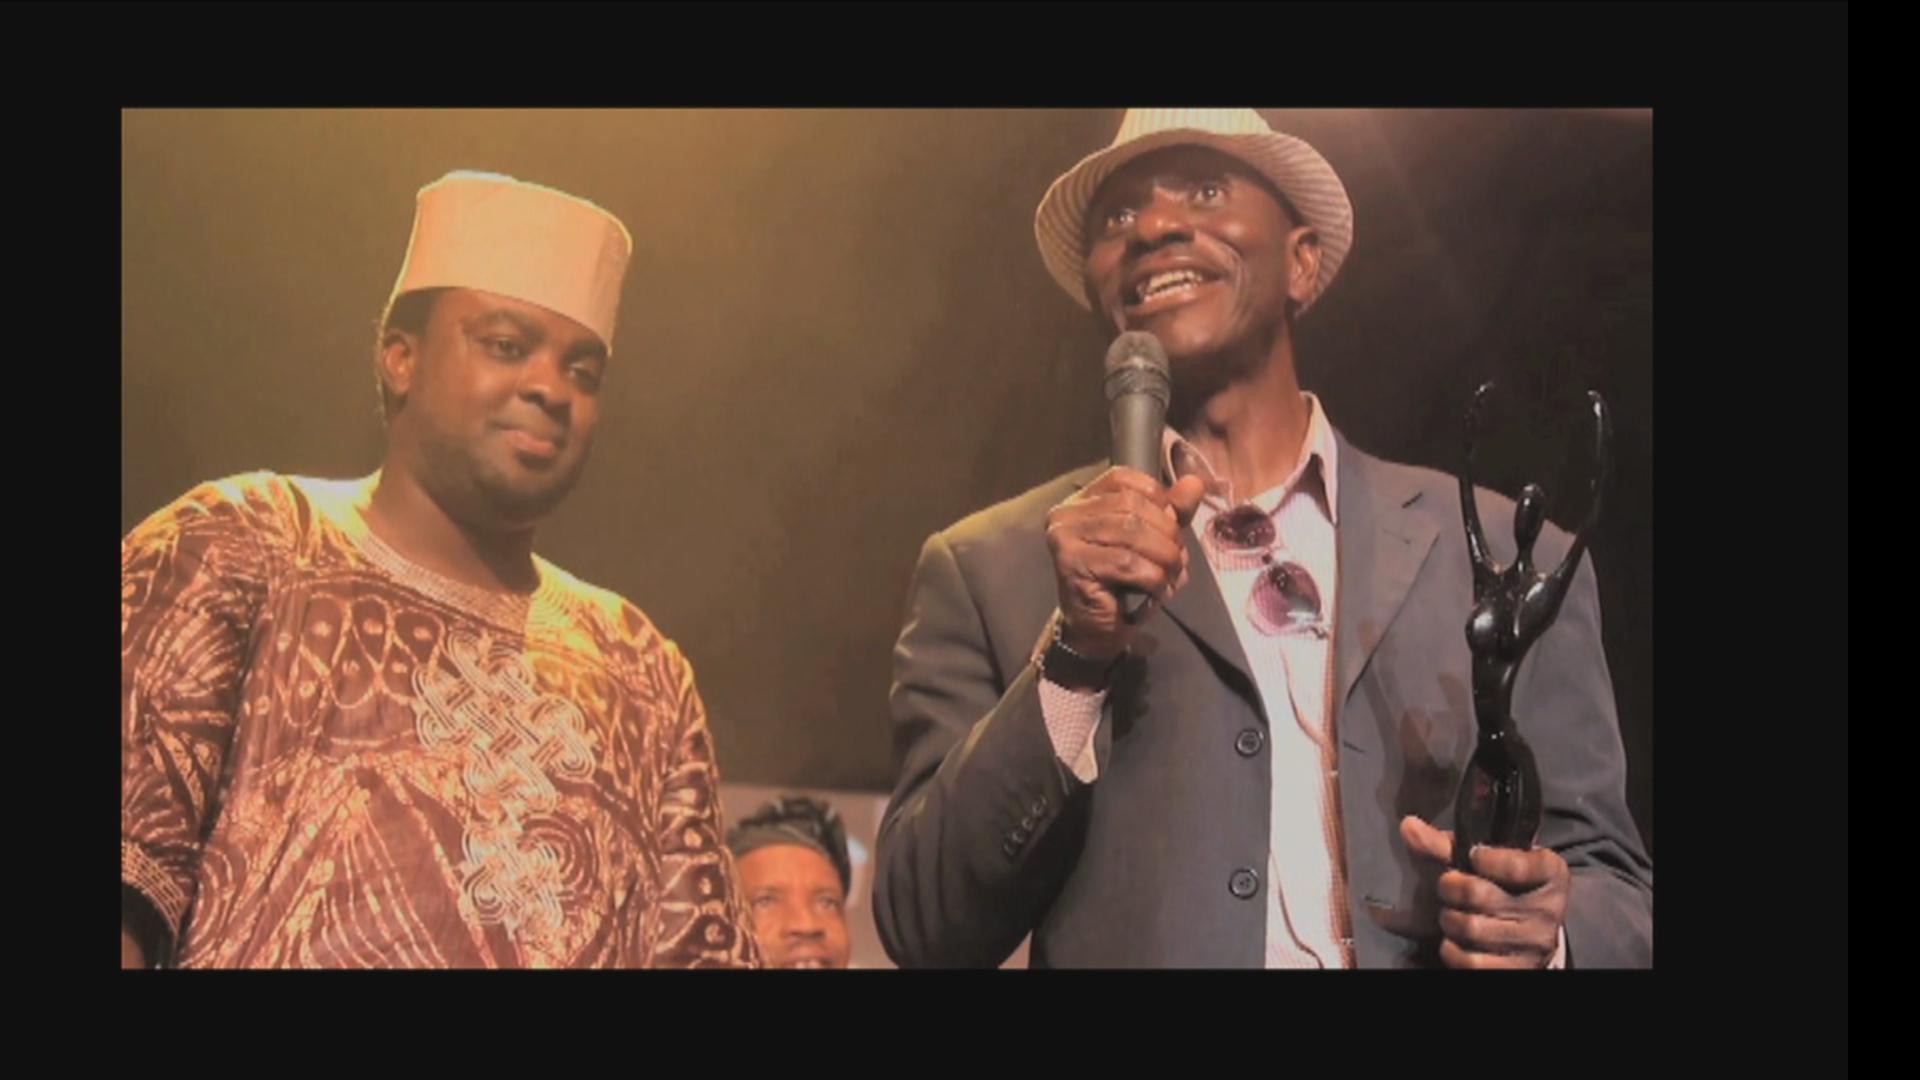 Pat expressing gratitude after he was awarded AMAA (African Movie Academy Awards) award for